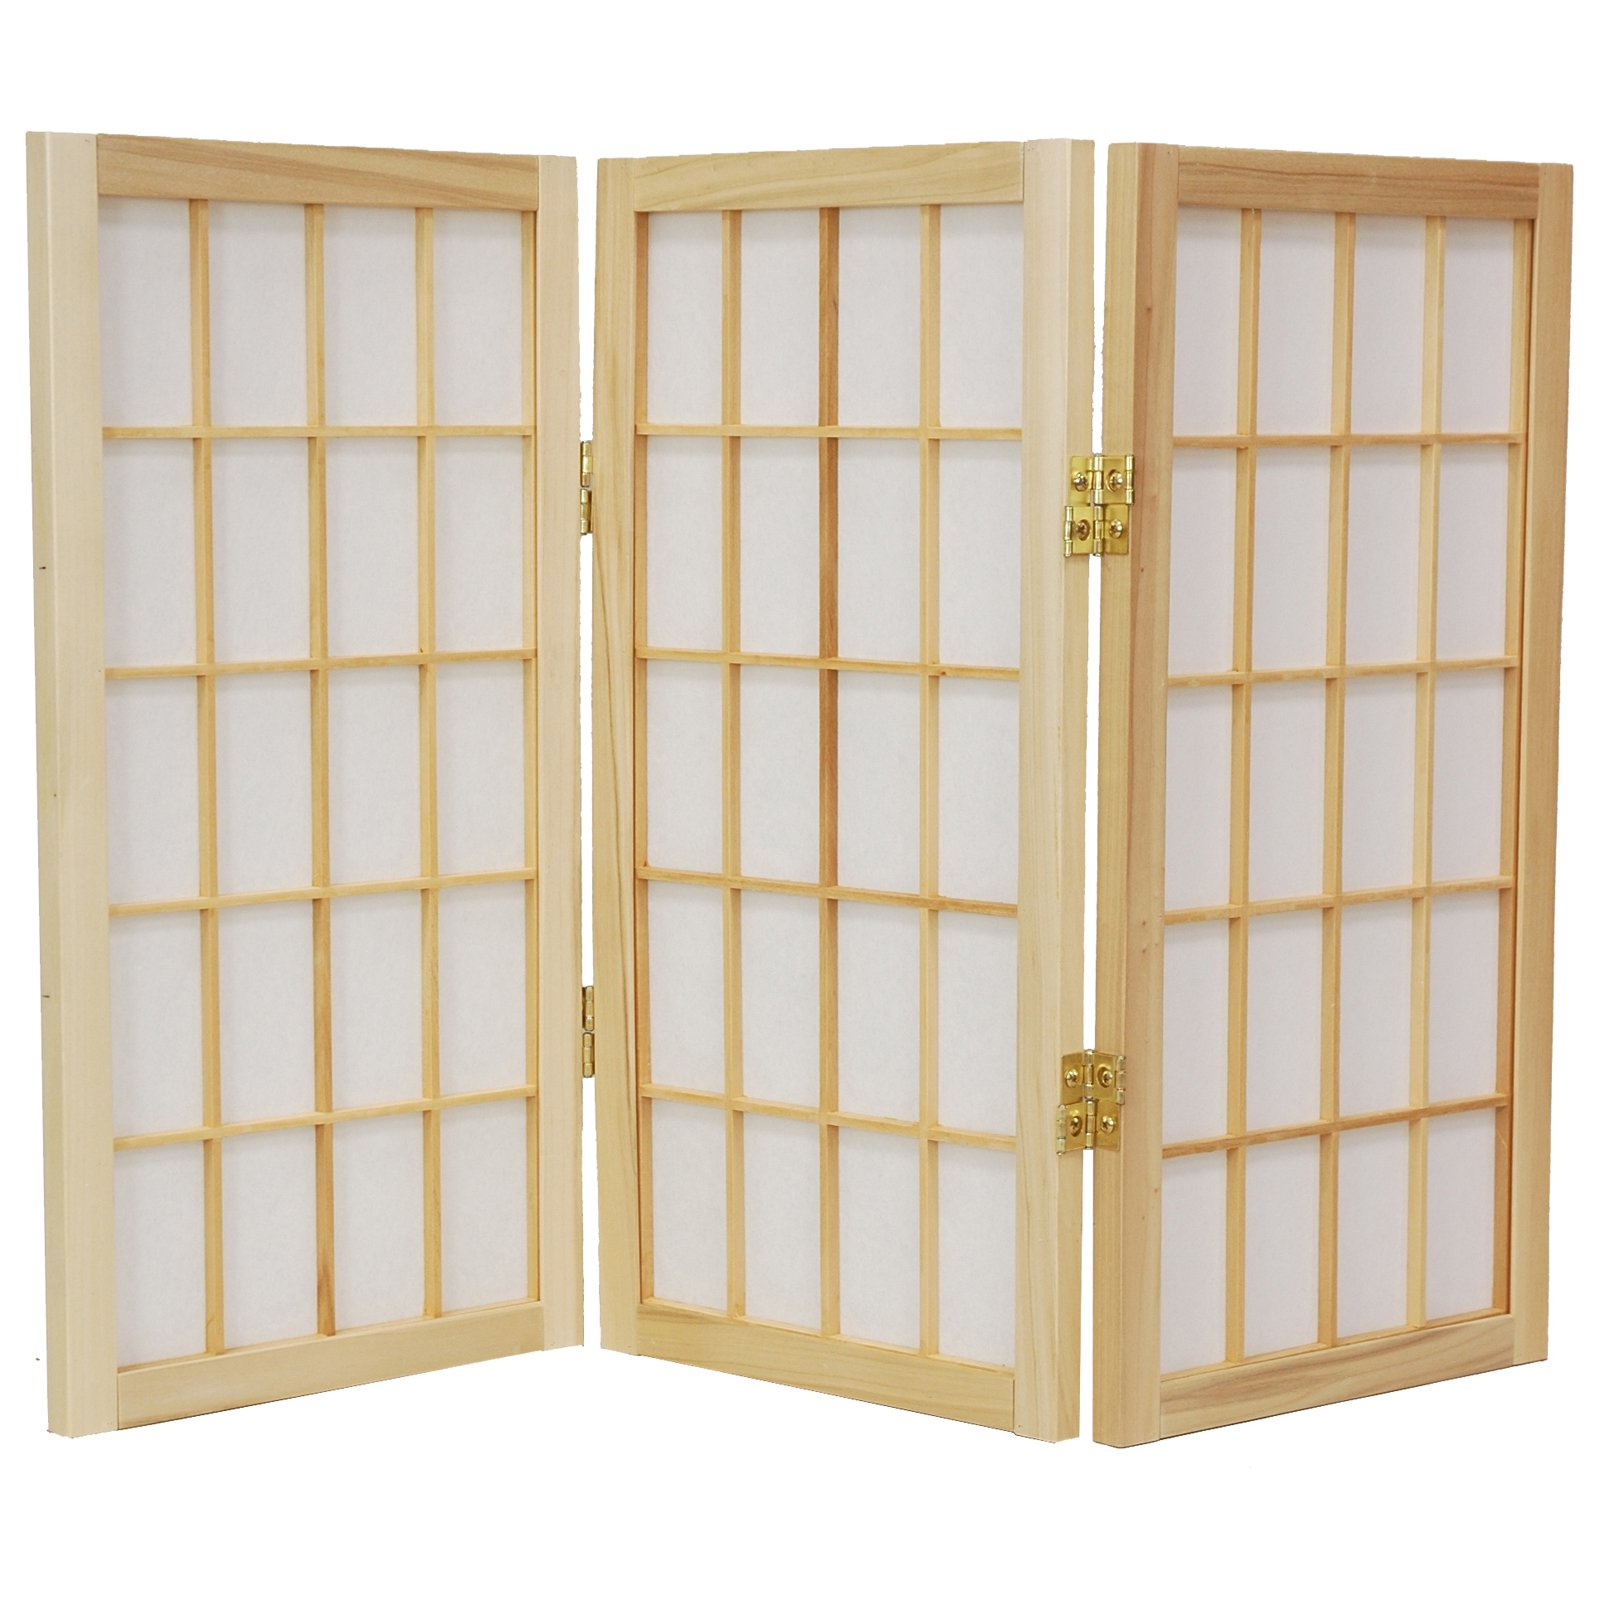 Oriental Furniture Desktop Window Pane 26.5 Inch Shoji Sc...